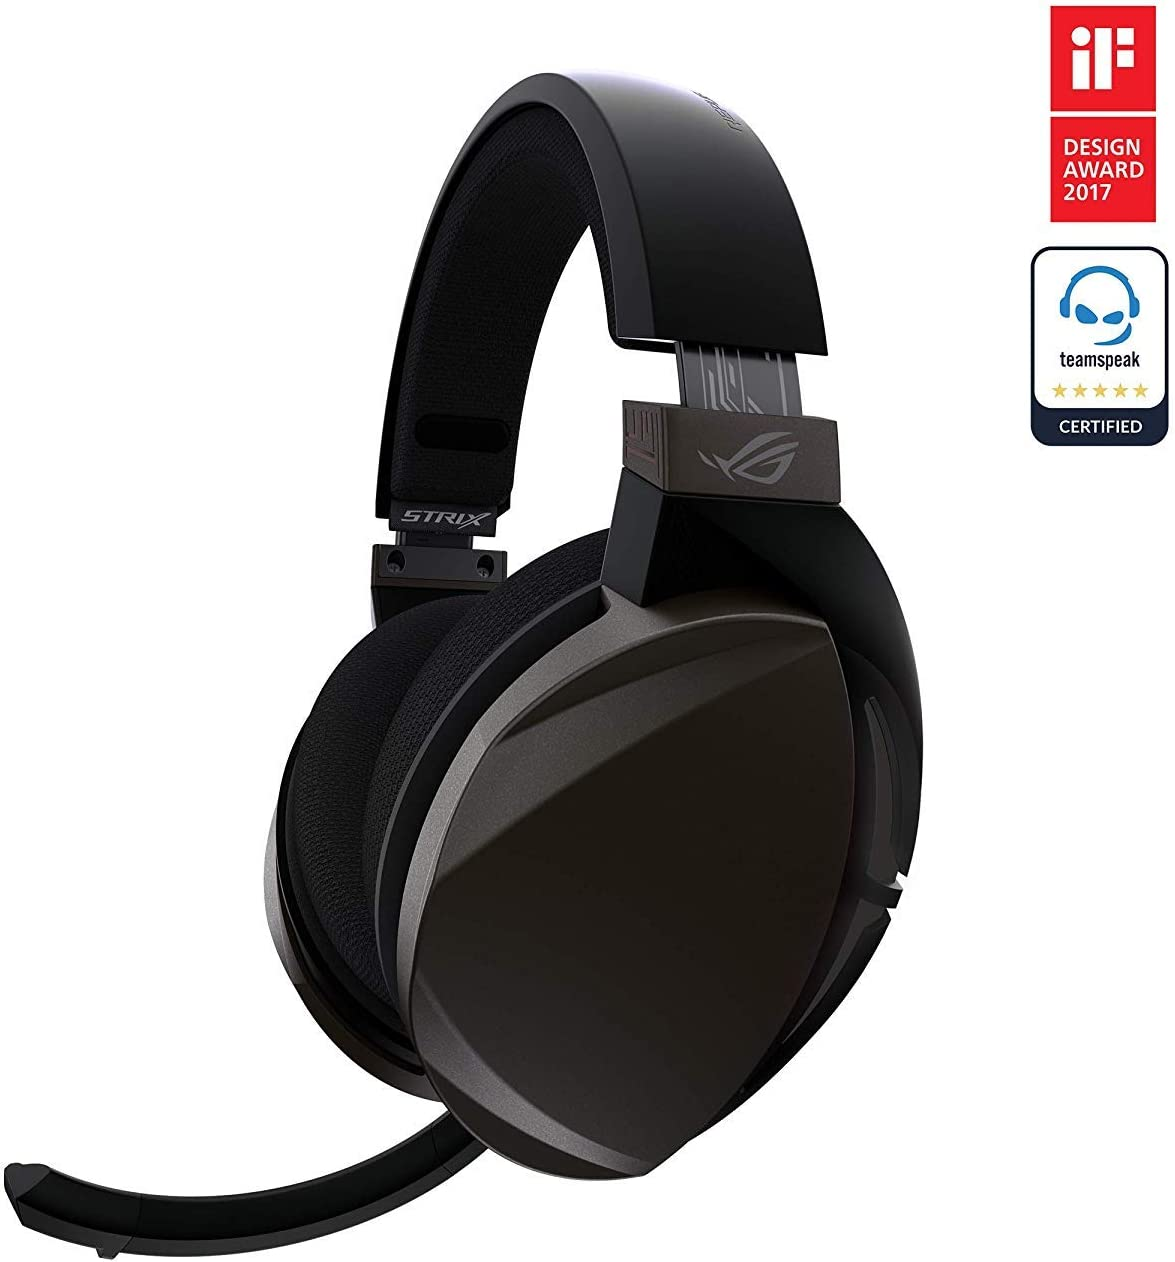 Asus ROG Strix Fusion Wireless - Auriculares gaming con conectividad inalámbrica de baja latencia de 2,4 GHz, 15 horas de autonomía, altavoces Asus Essence, controles táctiles, compatible con PC y PS4